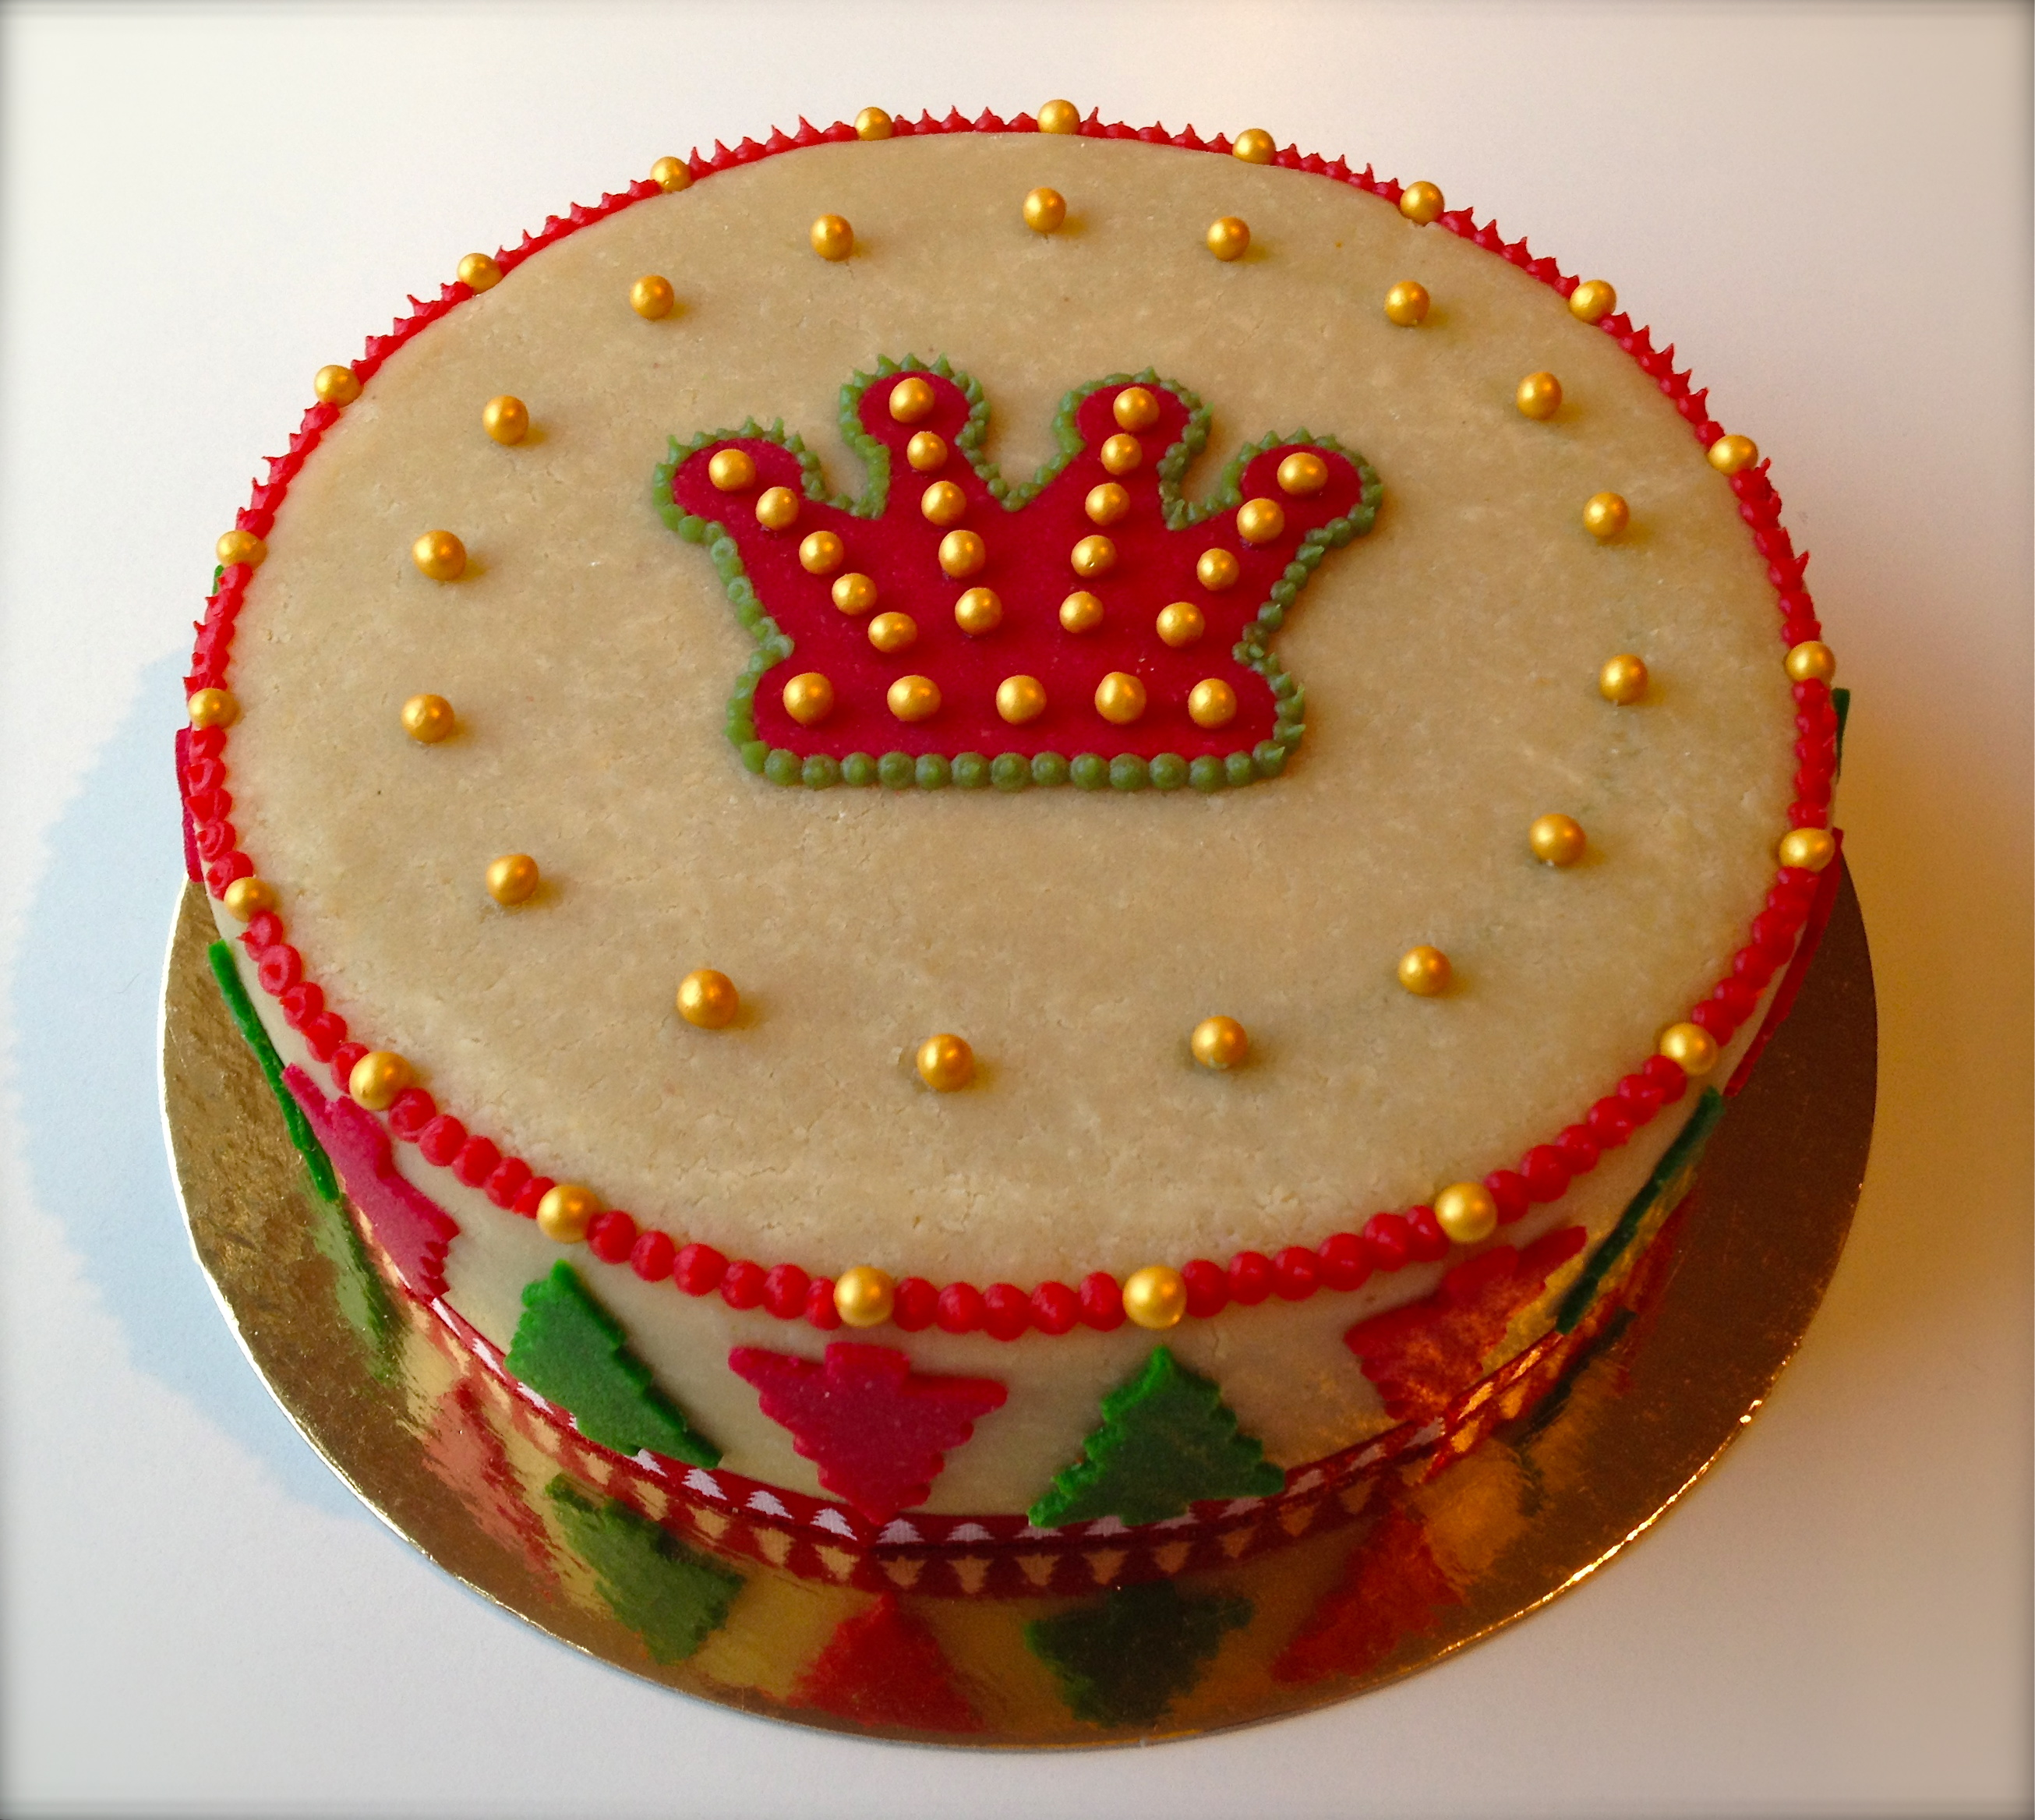 Marzipan Cake Decorations For Christmas : Bespoke Cakes The English Baker